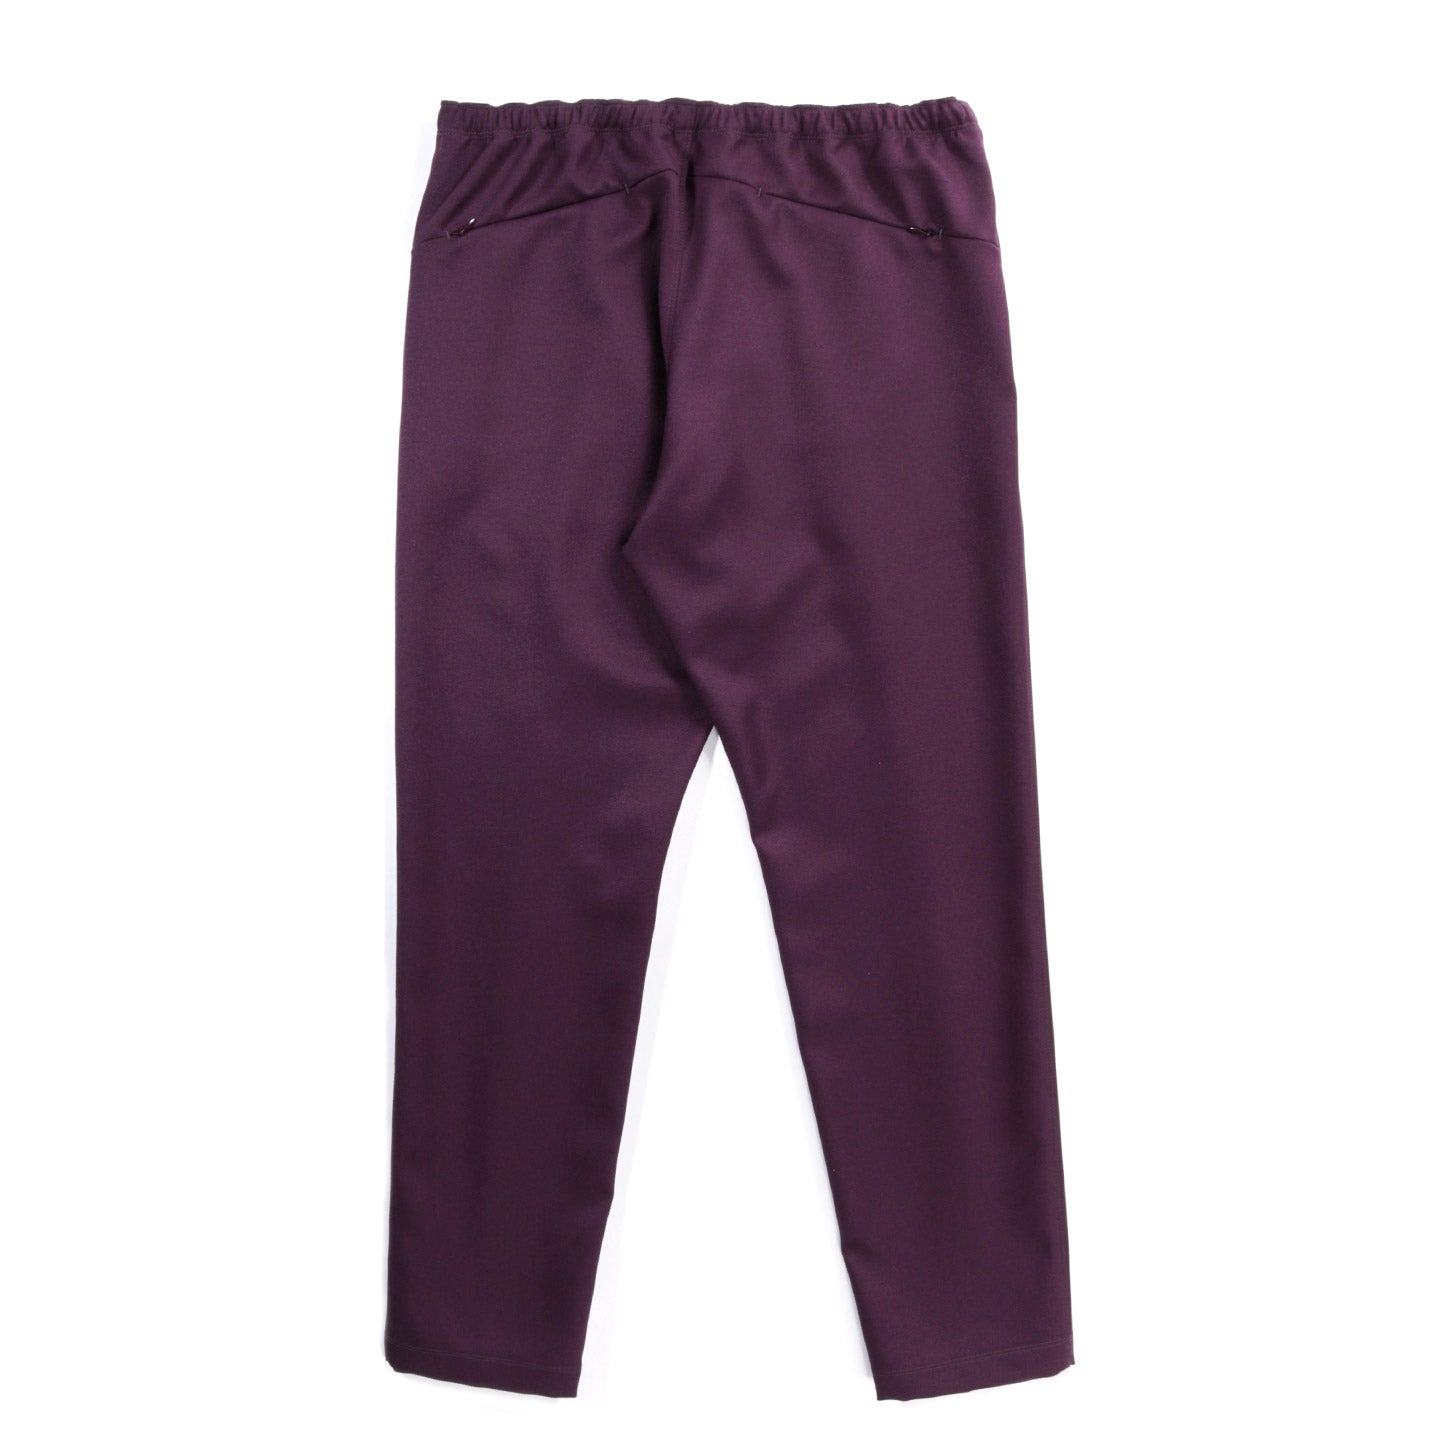 NEEDLES WARM UP PANT POLY COTTON TWILL BORDEAUX